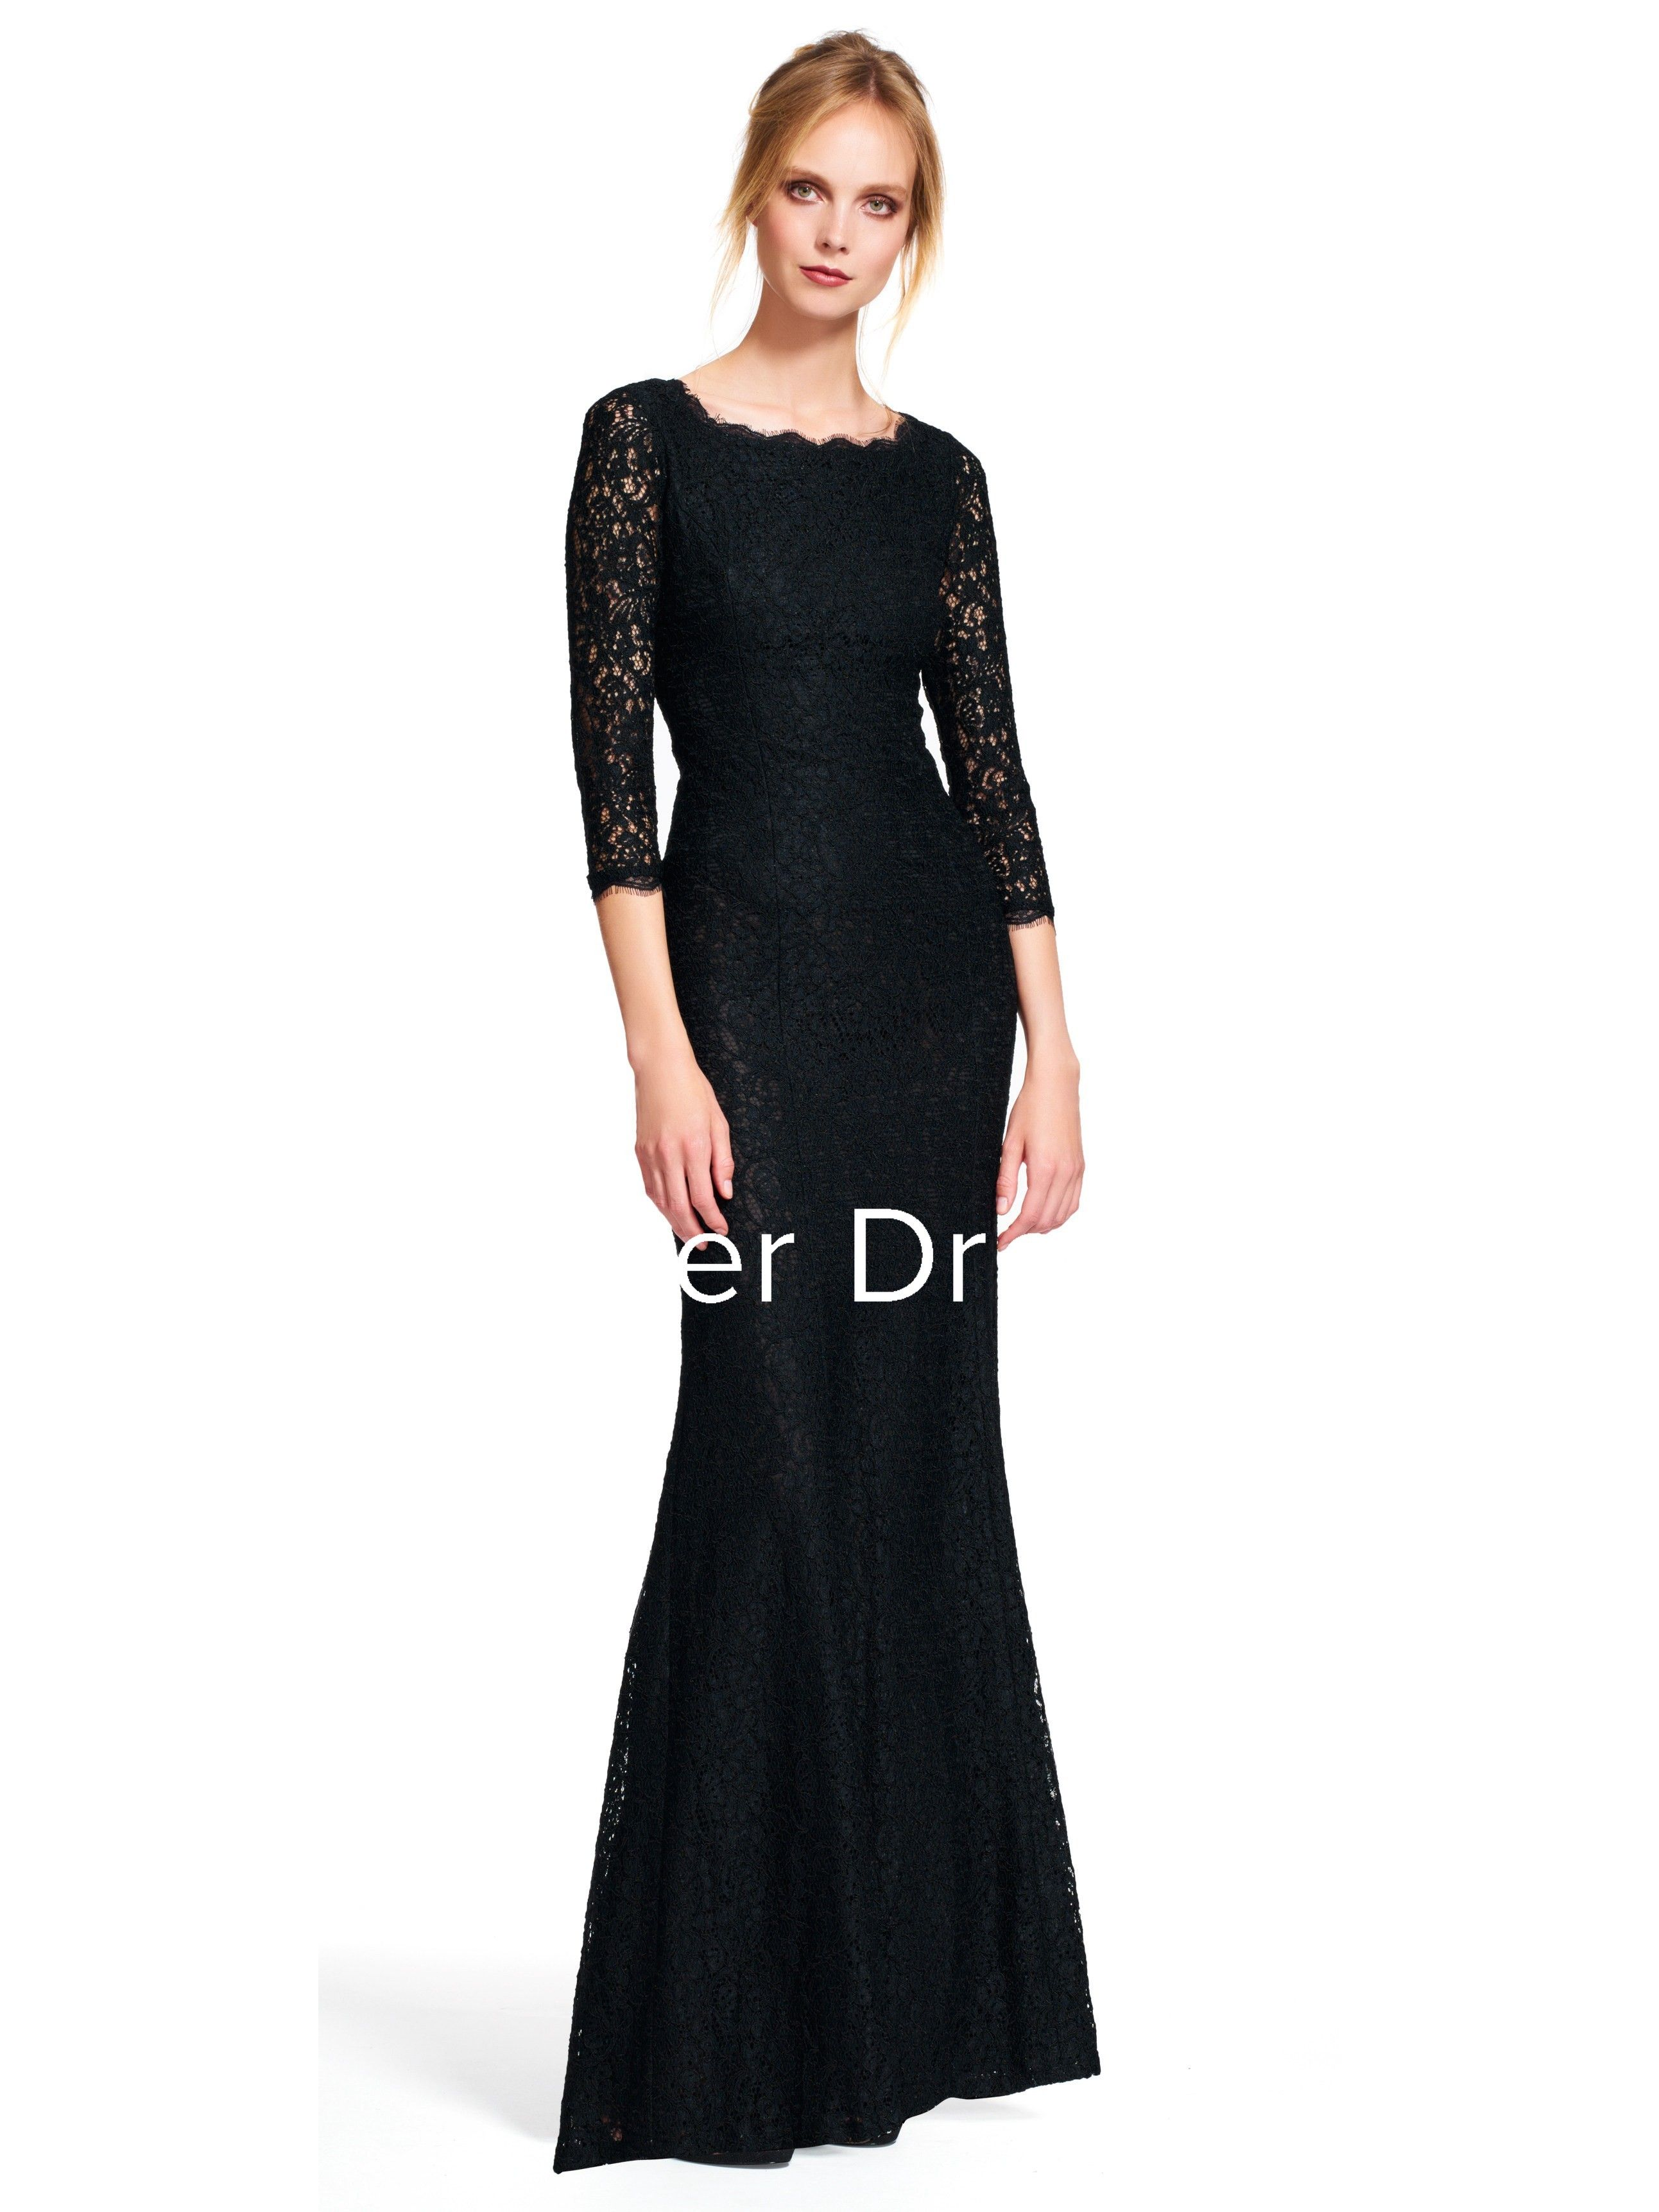 119 19 Beautiful Sheath Lace Long Black Bridesmaid Dress With Sleeves Http Www Ucenterdress Lace Dress Long Long Sleeve Lace Dress Lace Dress With Sleeves [ 3446 x 2585 Pixel ]